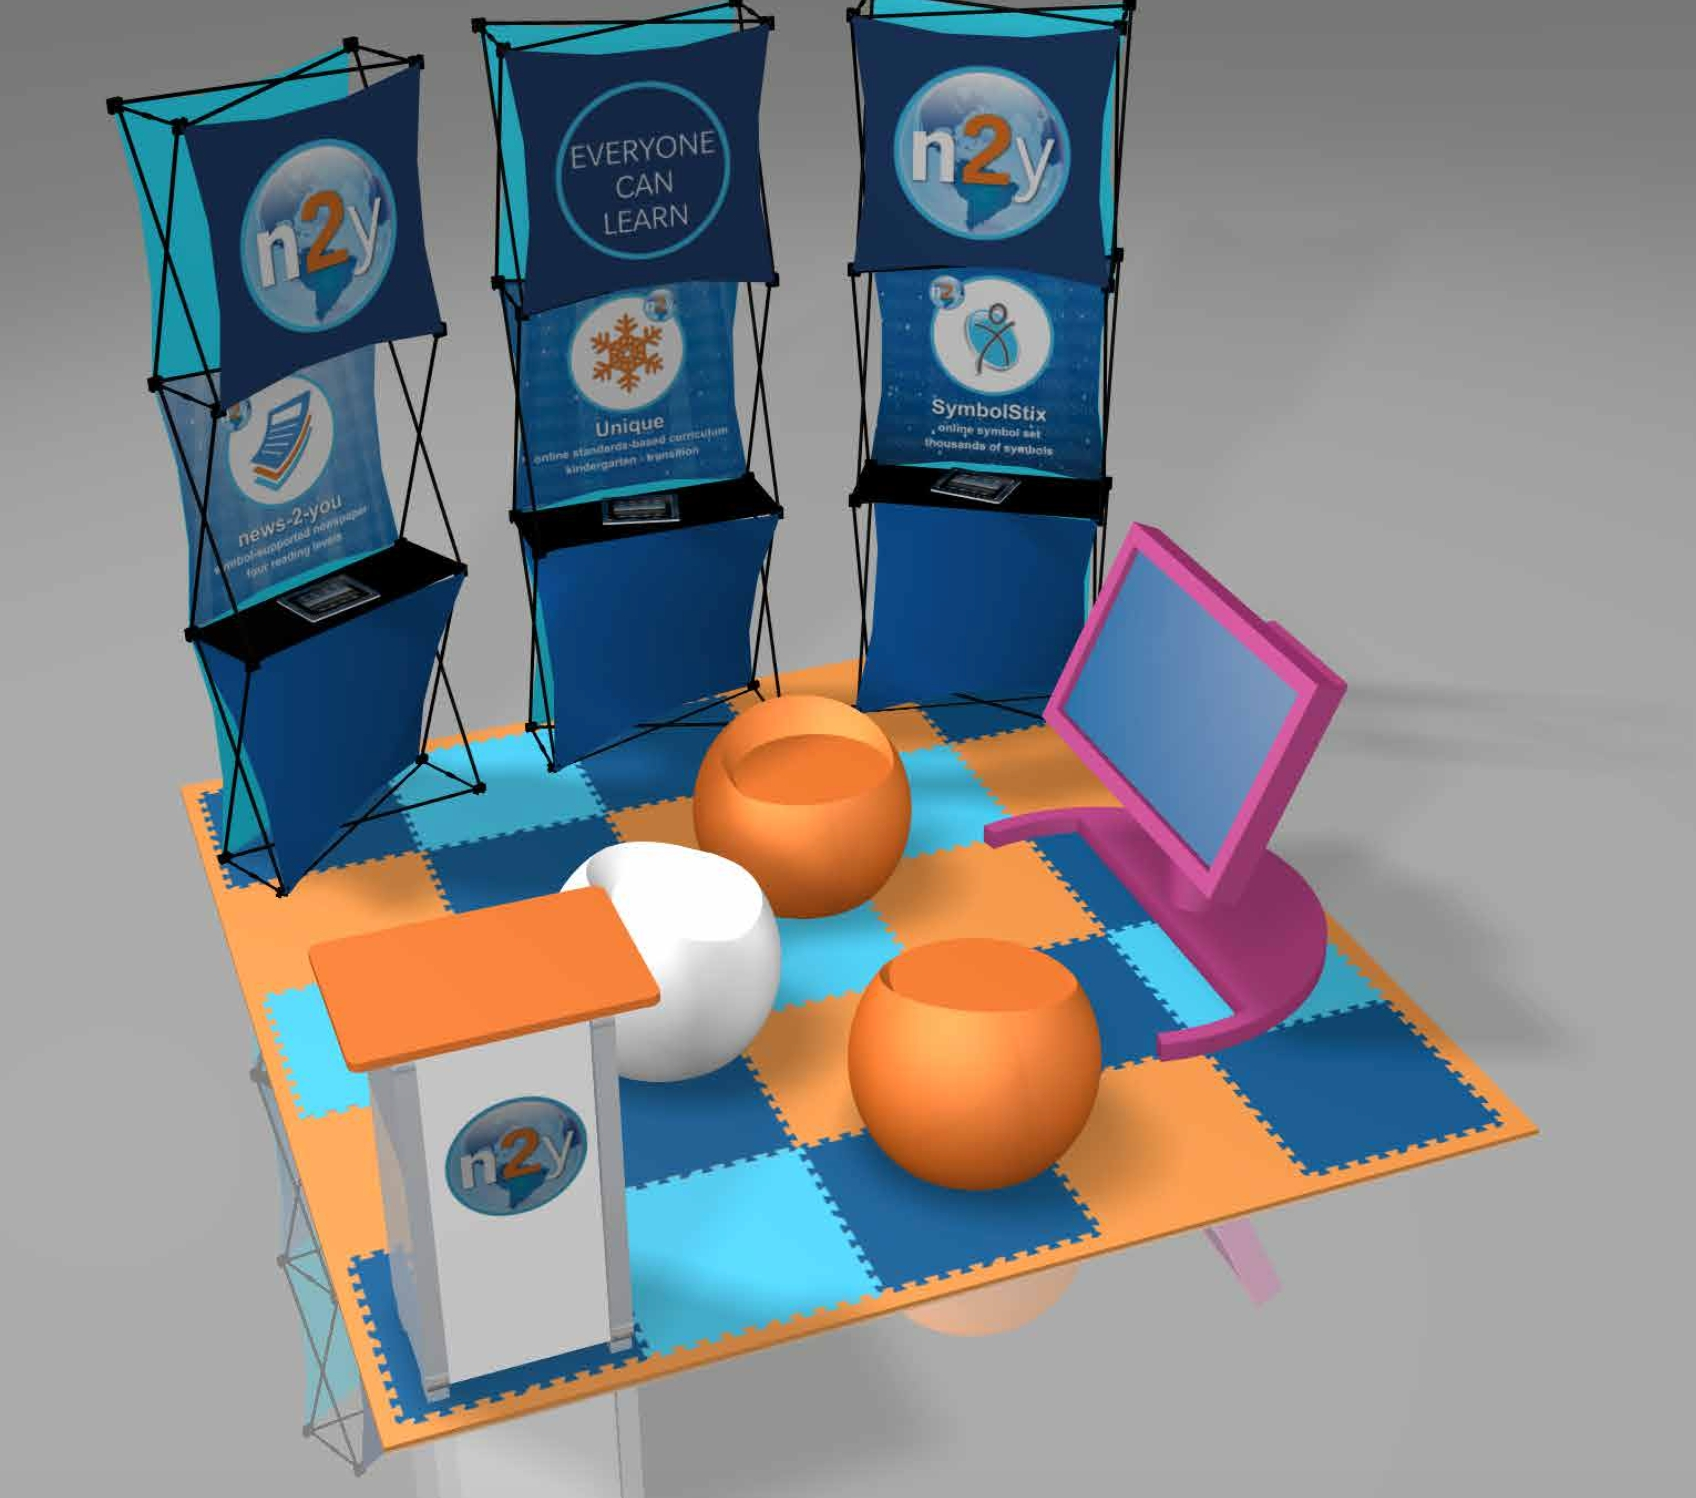 In the n2y display at the SXSWedu Playground, visitors will be able to use tablets and whiteboards to see how teachers use n2y's interactive lessons, online newspaper and symbol-based language to engage students with complex needs (Photo: Business Wire)